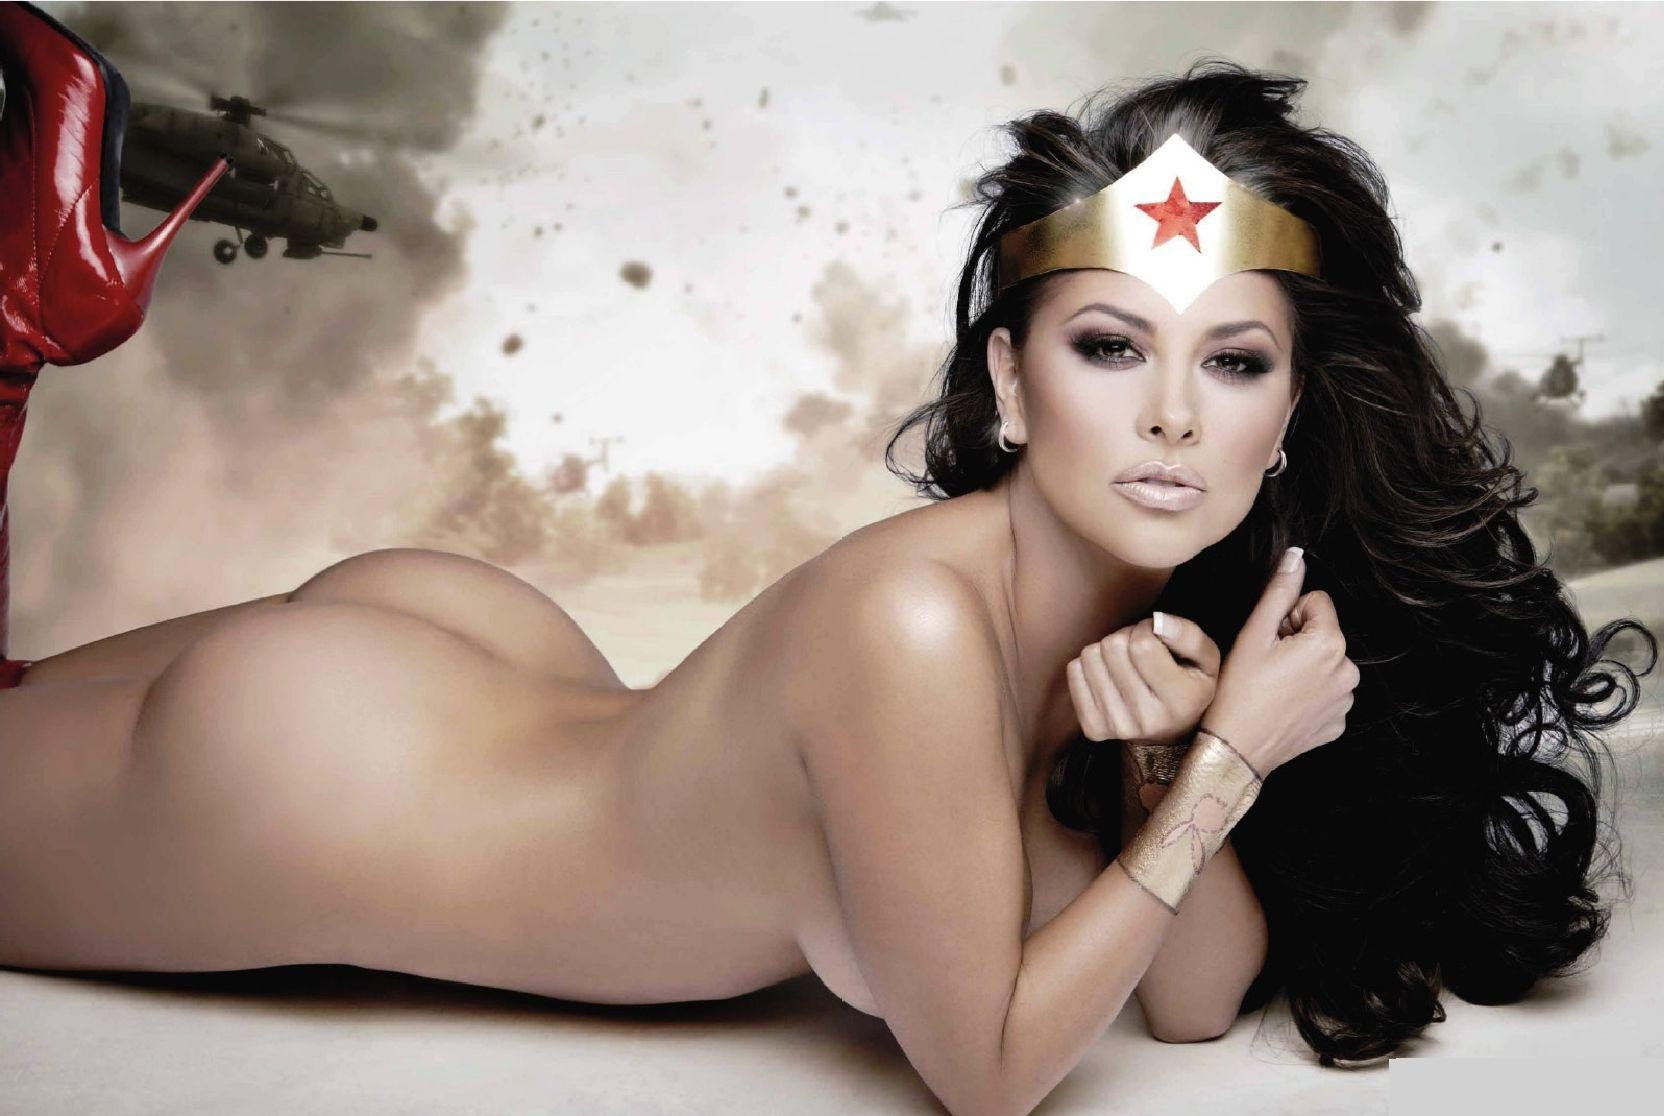 Nude Pictures Of Wonder Woman